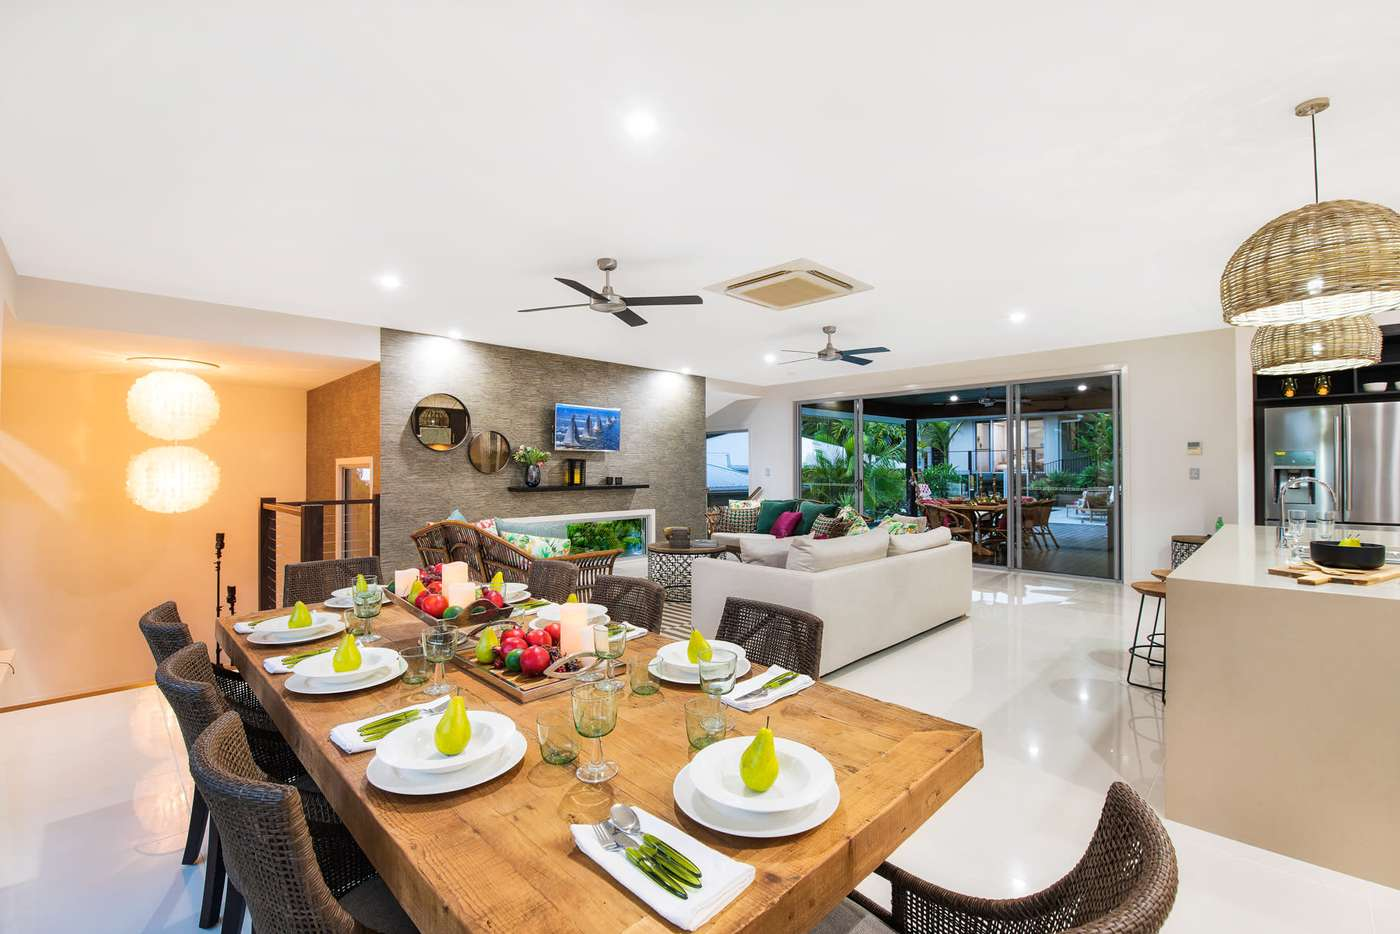 Fifth view of Homely house listing, 16 Warrener Place, Maroochy River QLD 4561